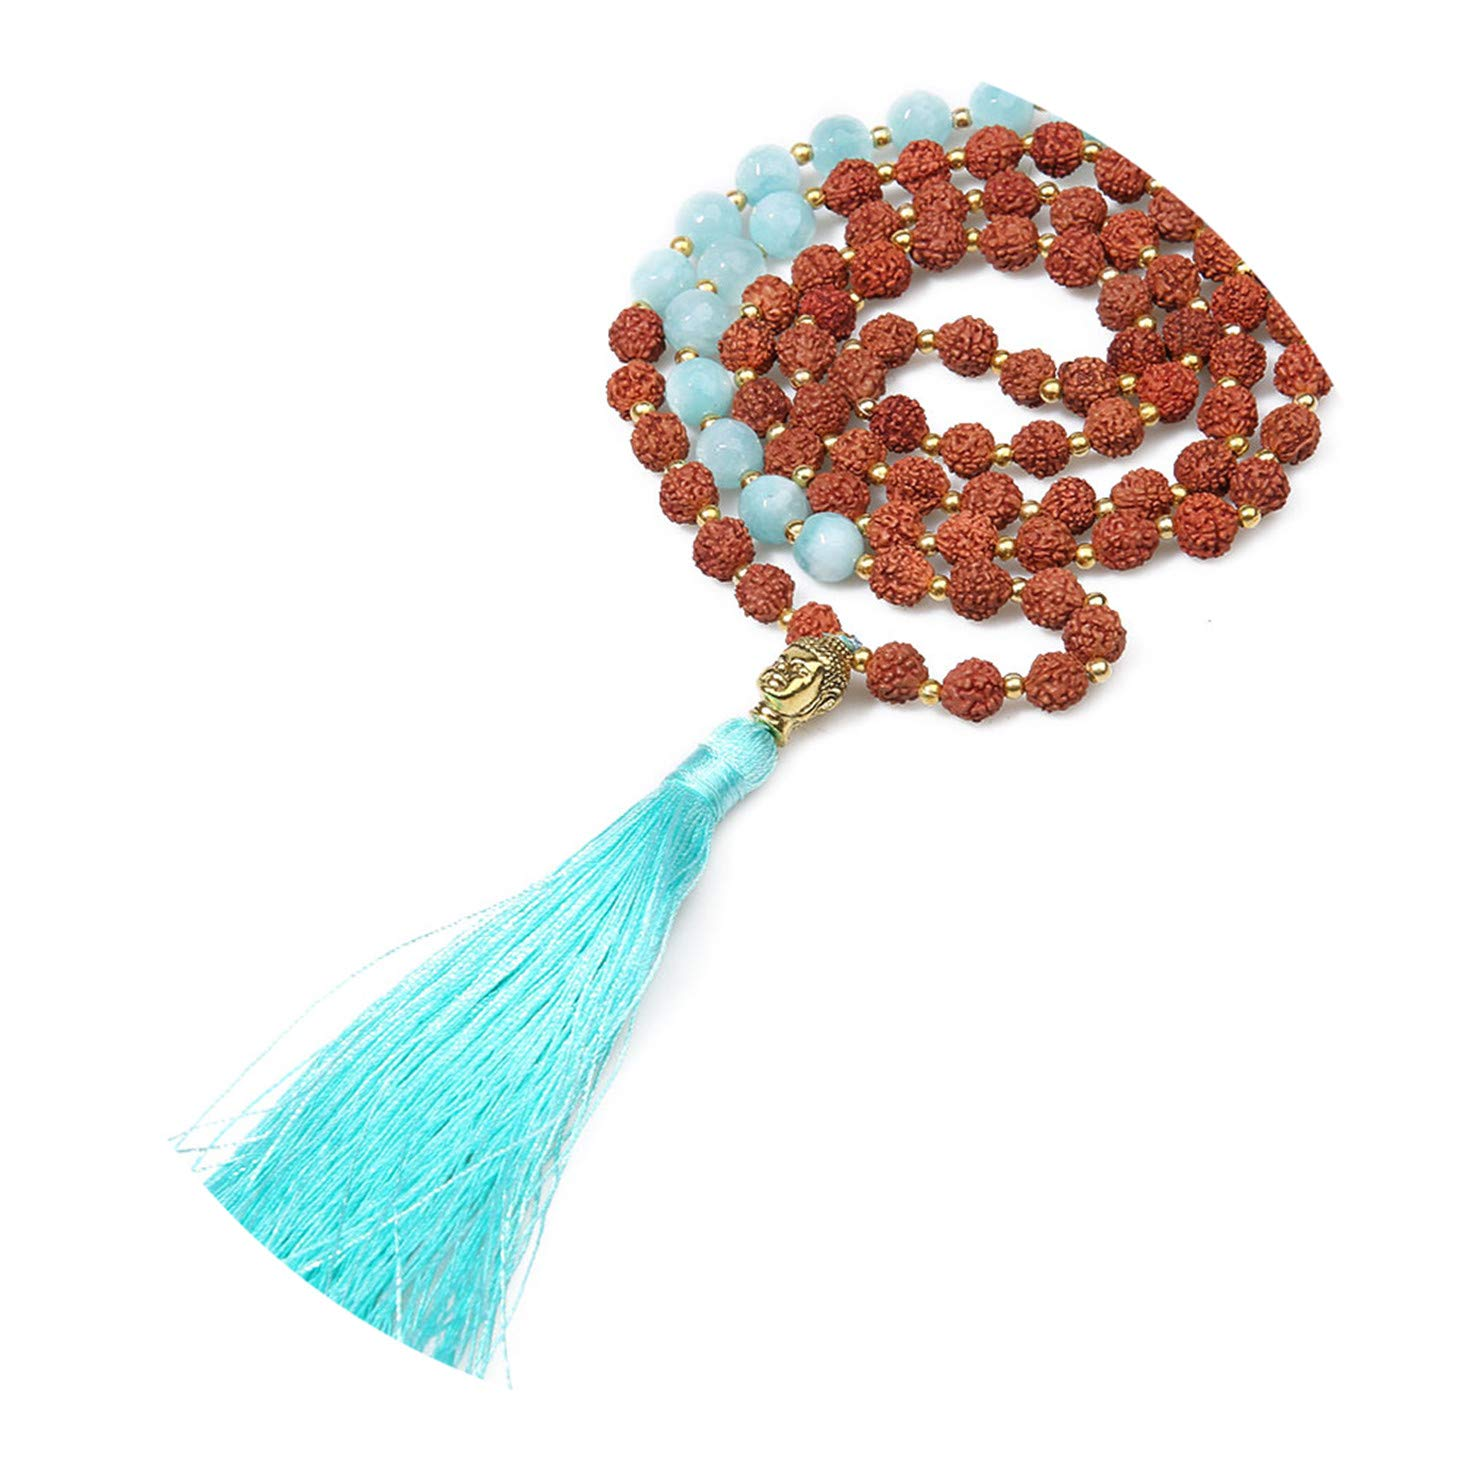 Bohemian Ethnic Necklace for Women Natural Stone Rudraksha Beads Necklace Handmade Buddha Head TASS